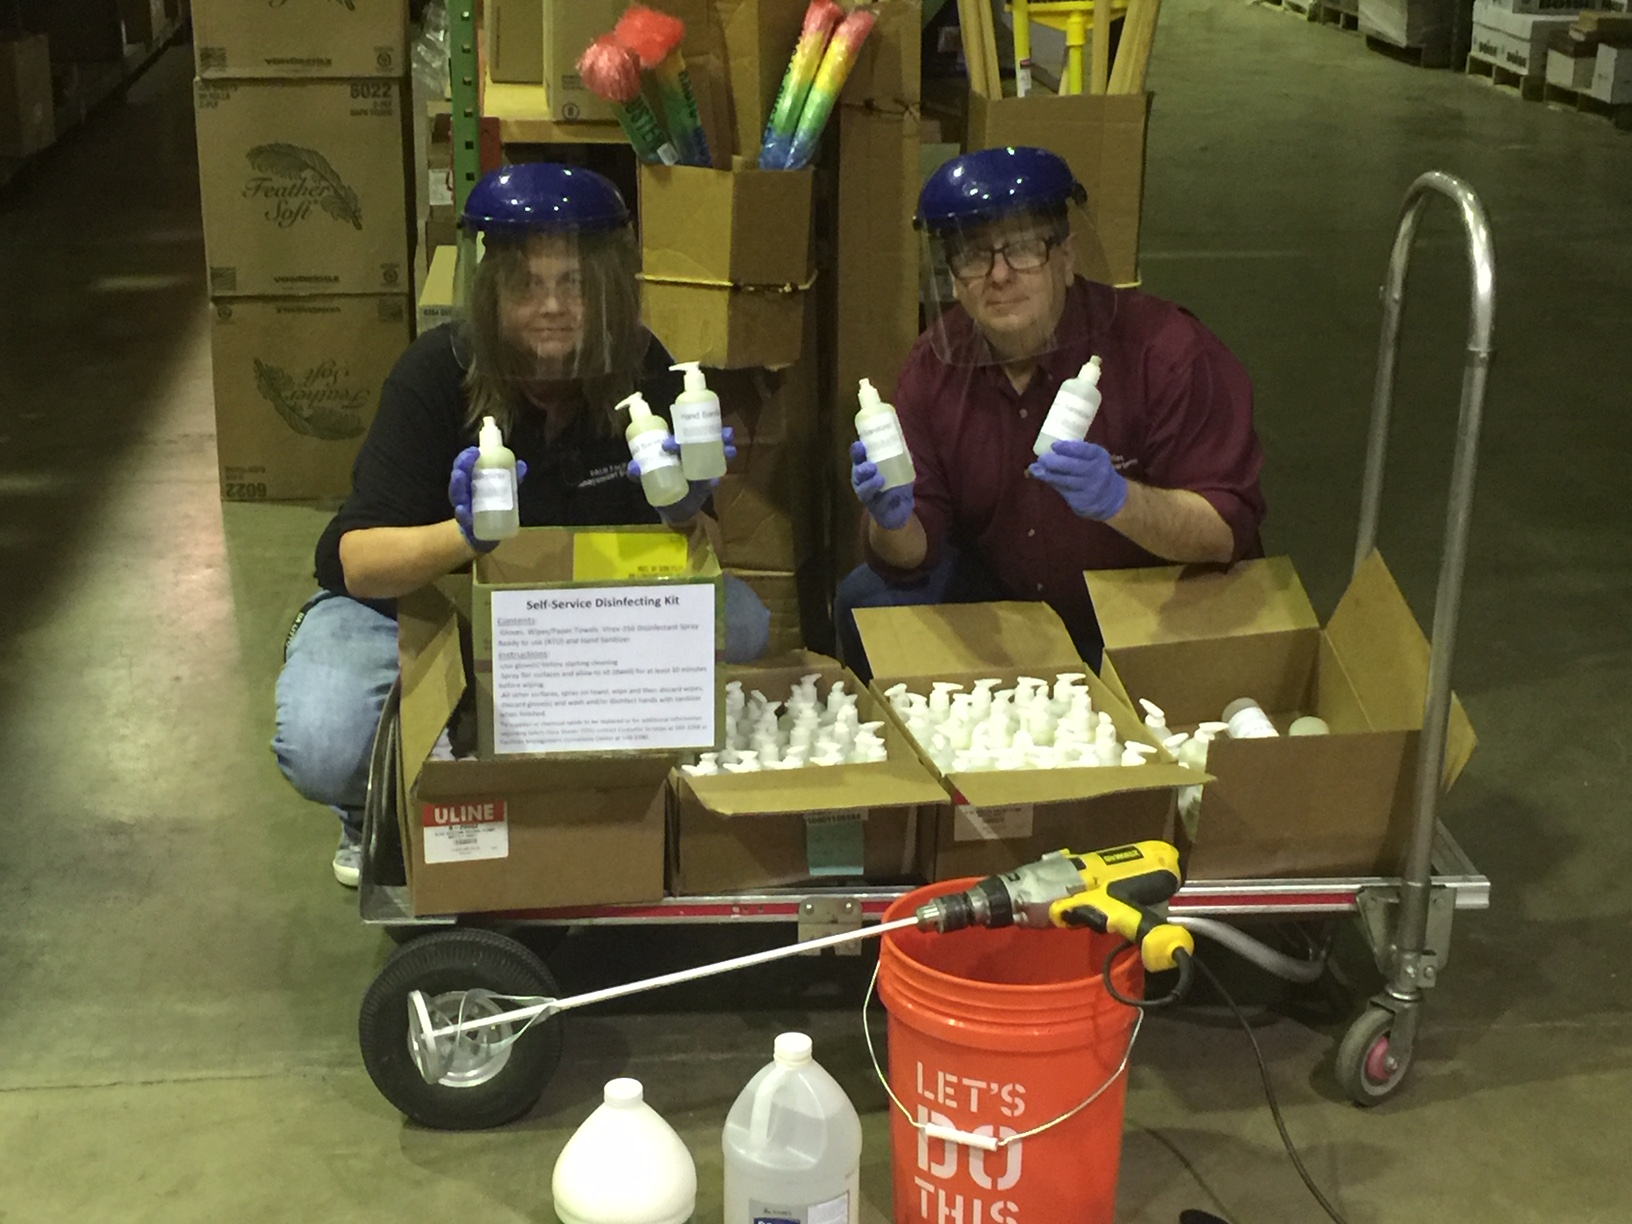 Sandra Vail, left, and Vince Rodgers, right, transport the hand sanitizers made by Facilities Management for use on the UA Little Rock campus.